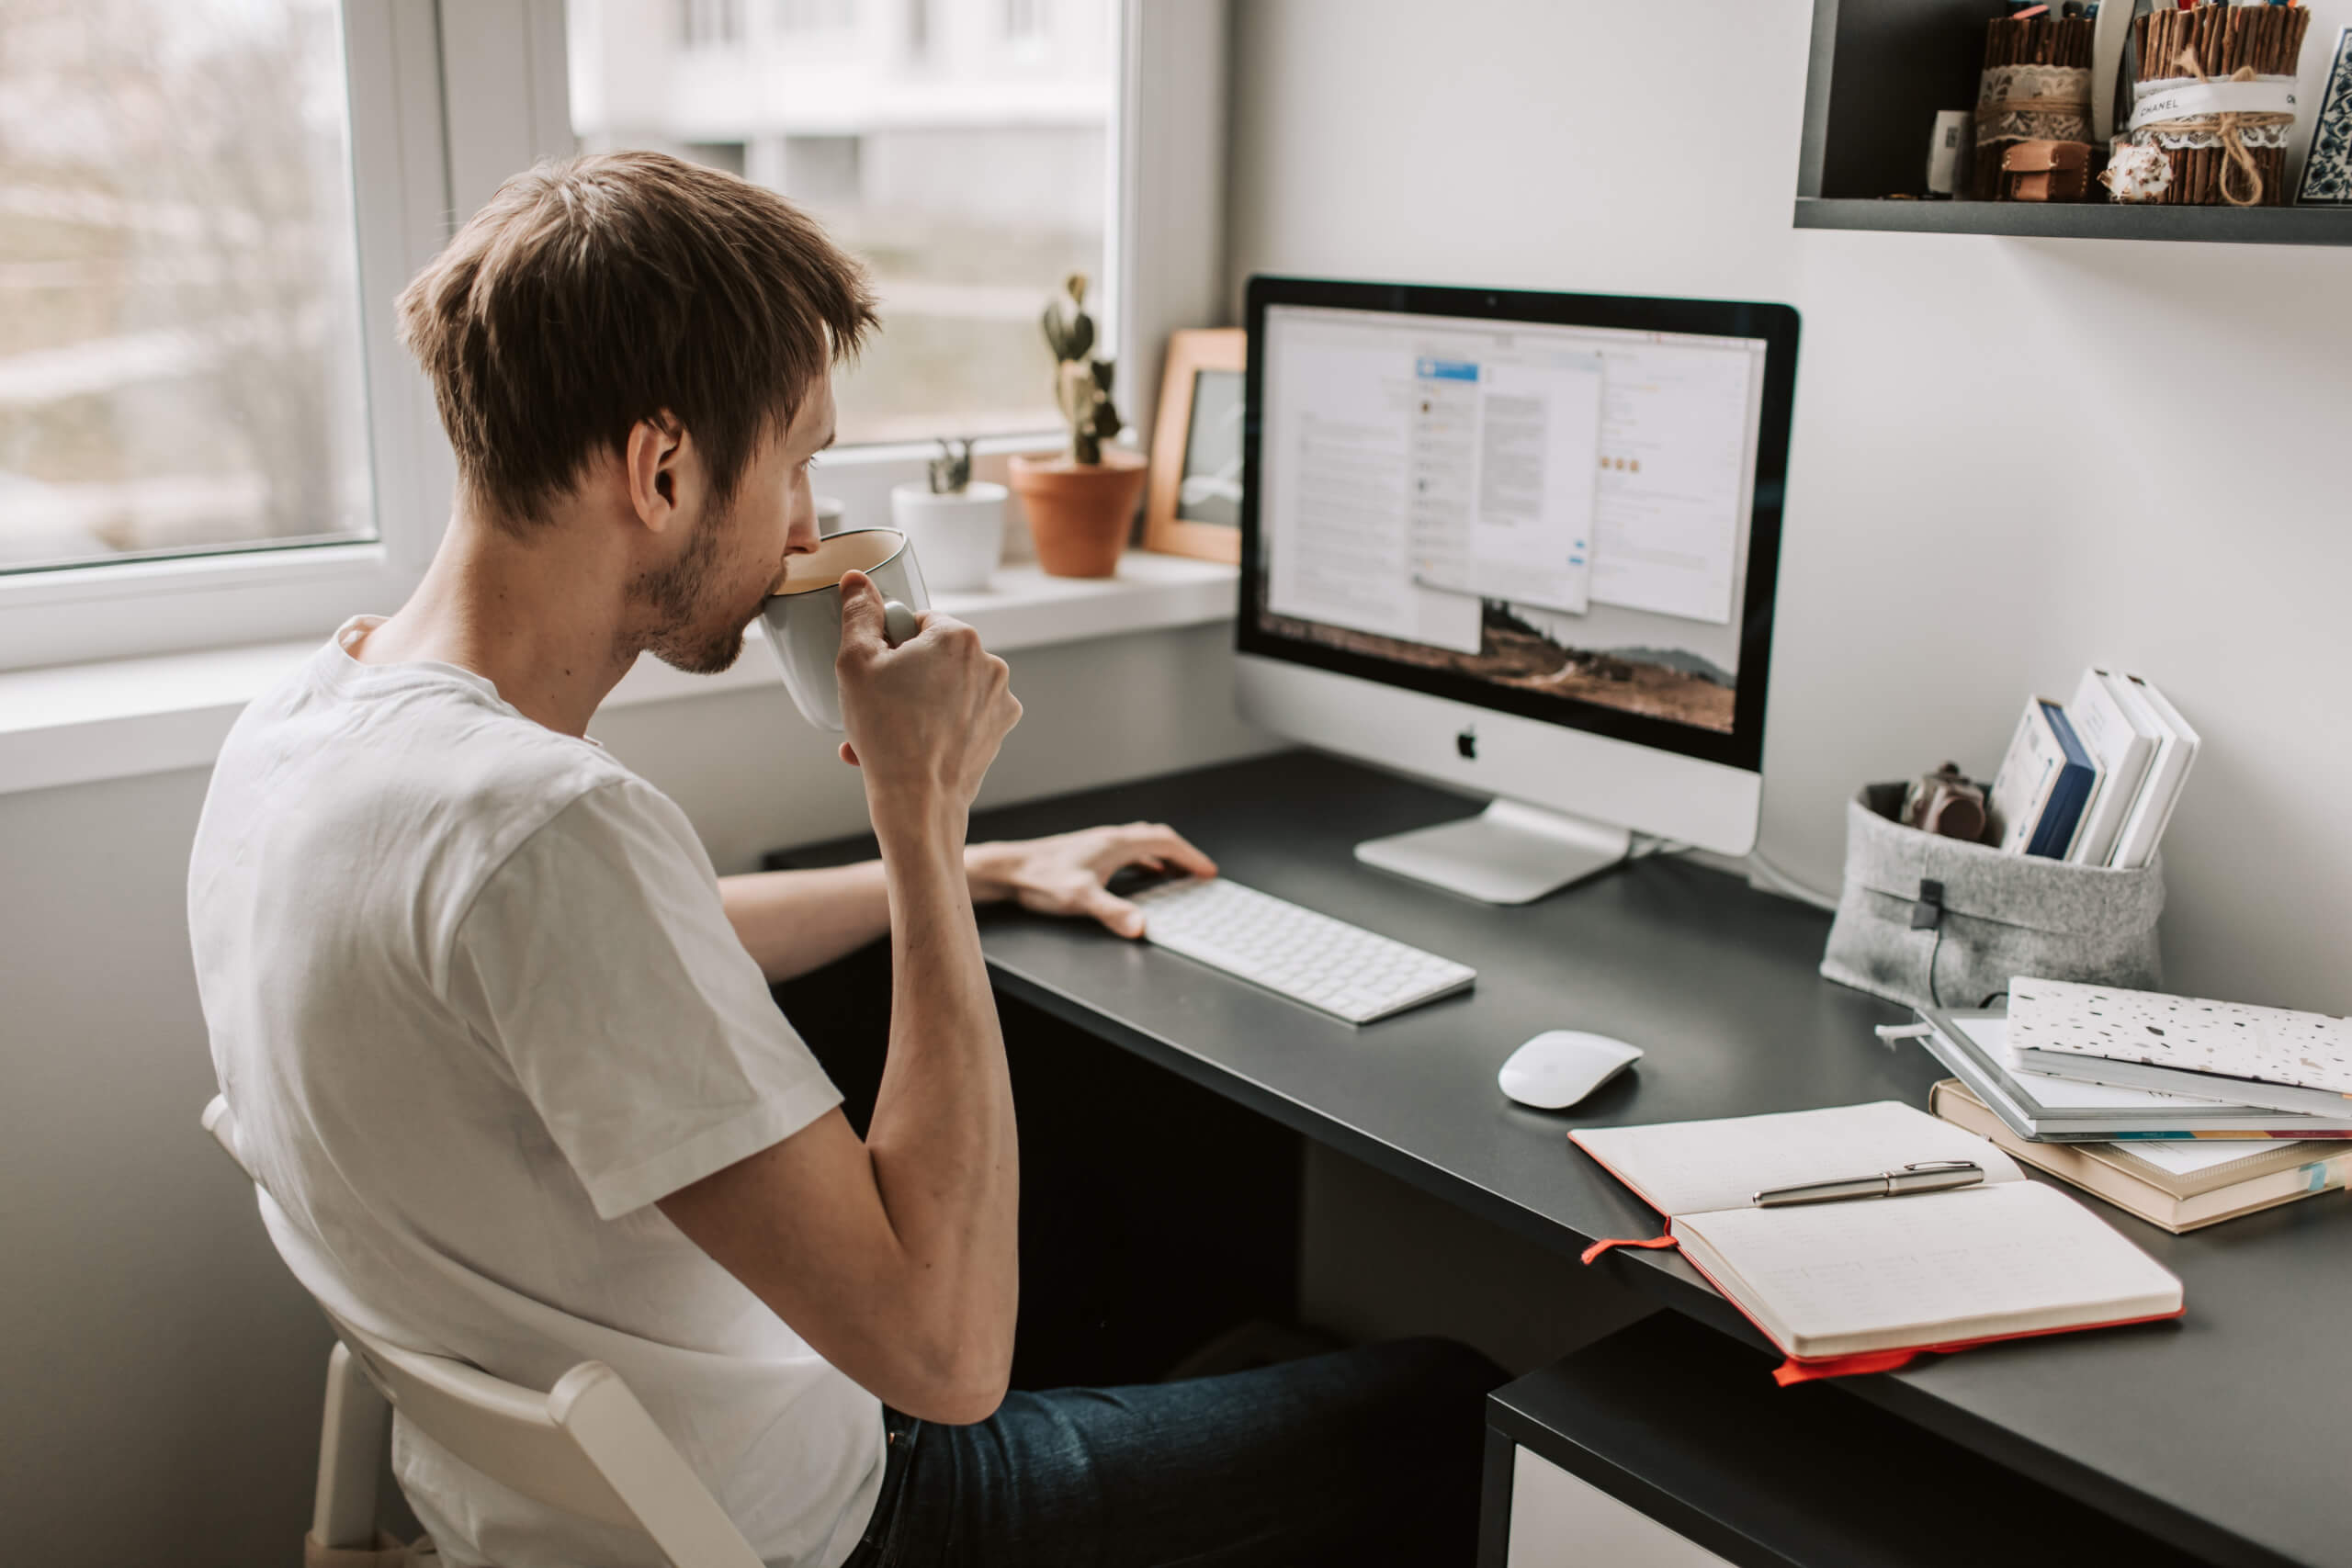 Neural machine translation: a man takes a sip from a mug while doing post editing on a text on his computer